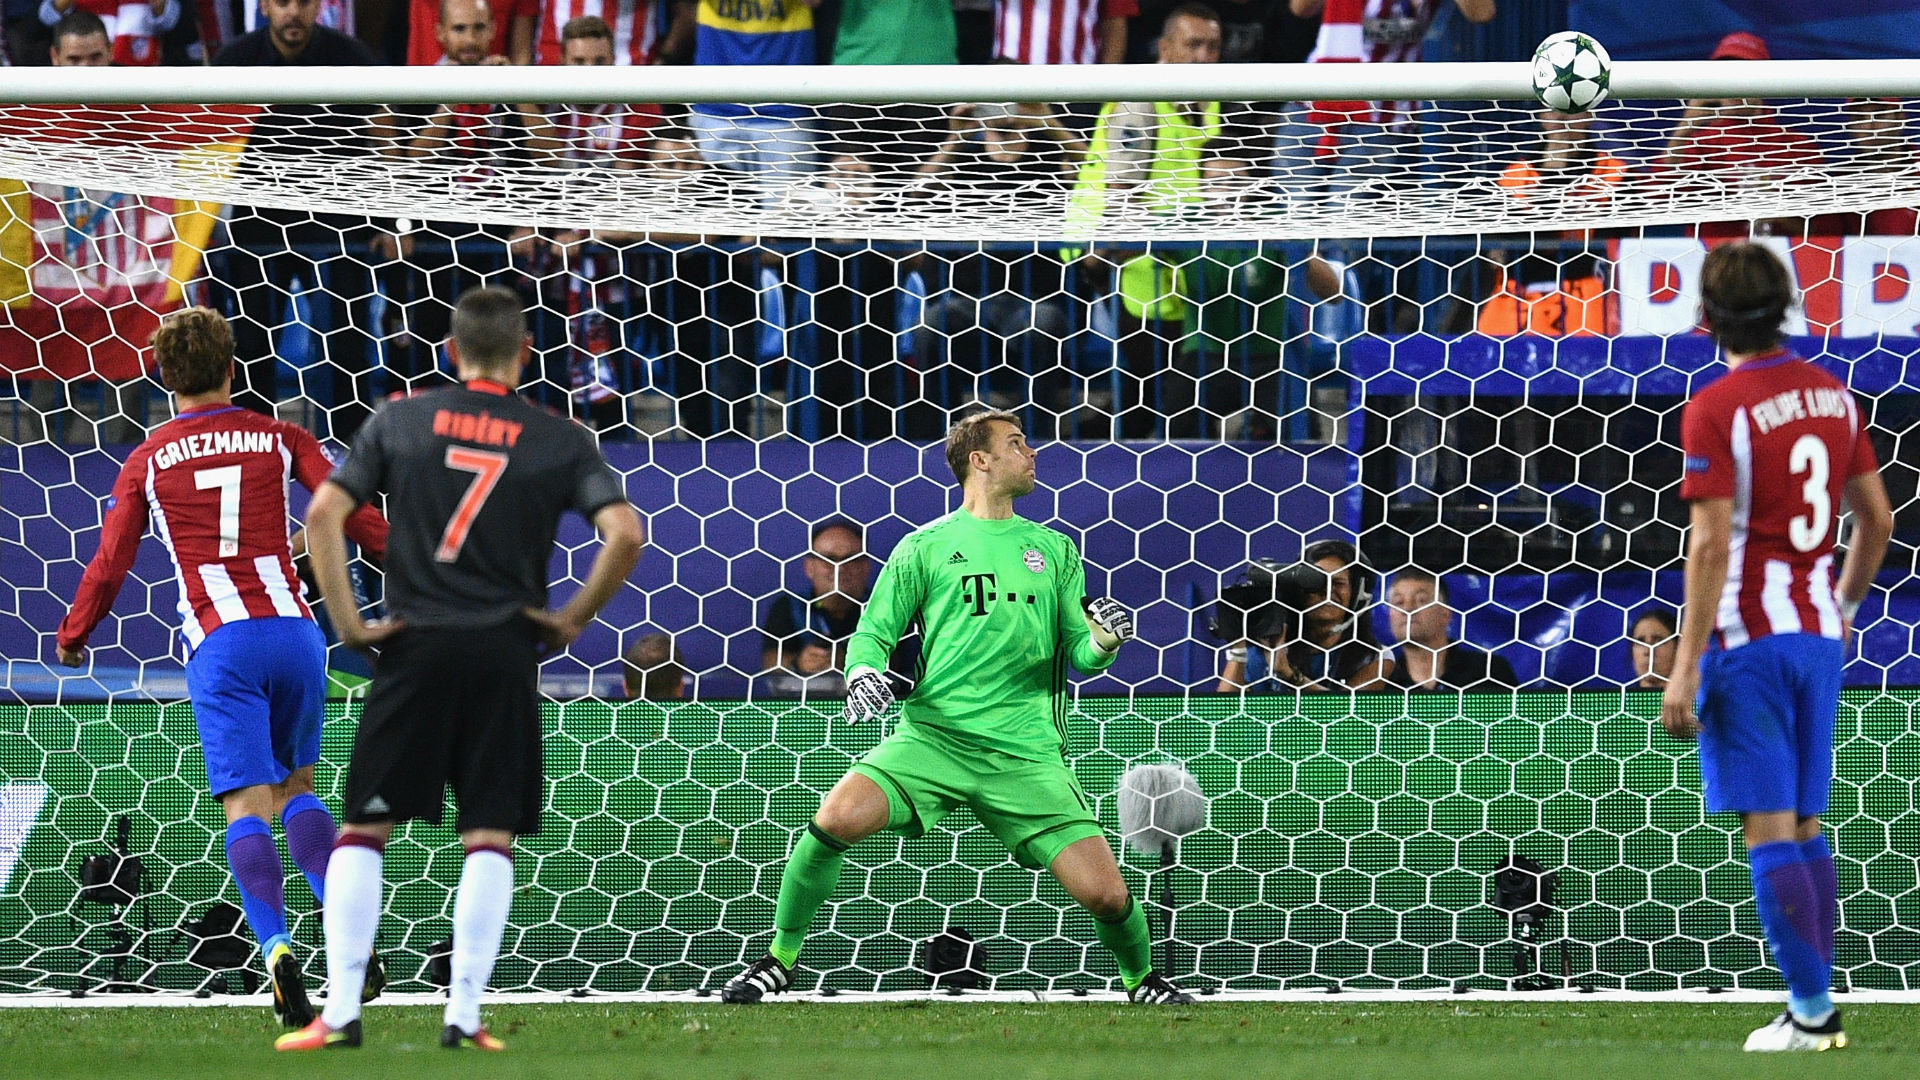 Griezmann Penalty on the crossbar against Neuer Atletico Bayern Champions League 28092016